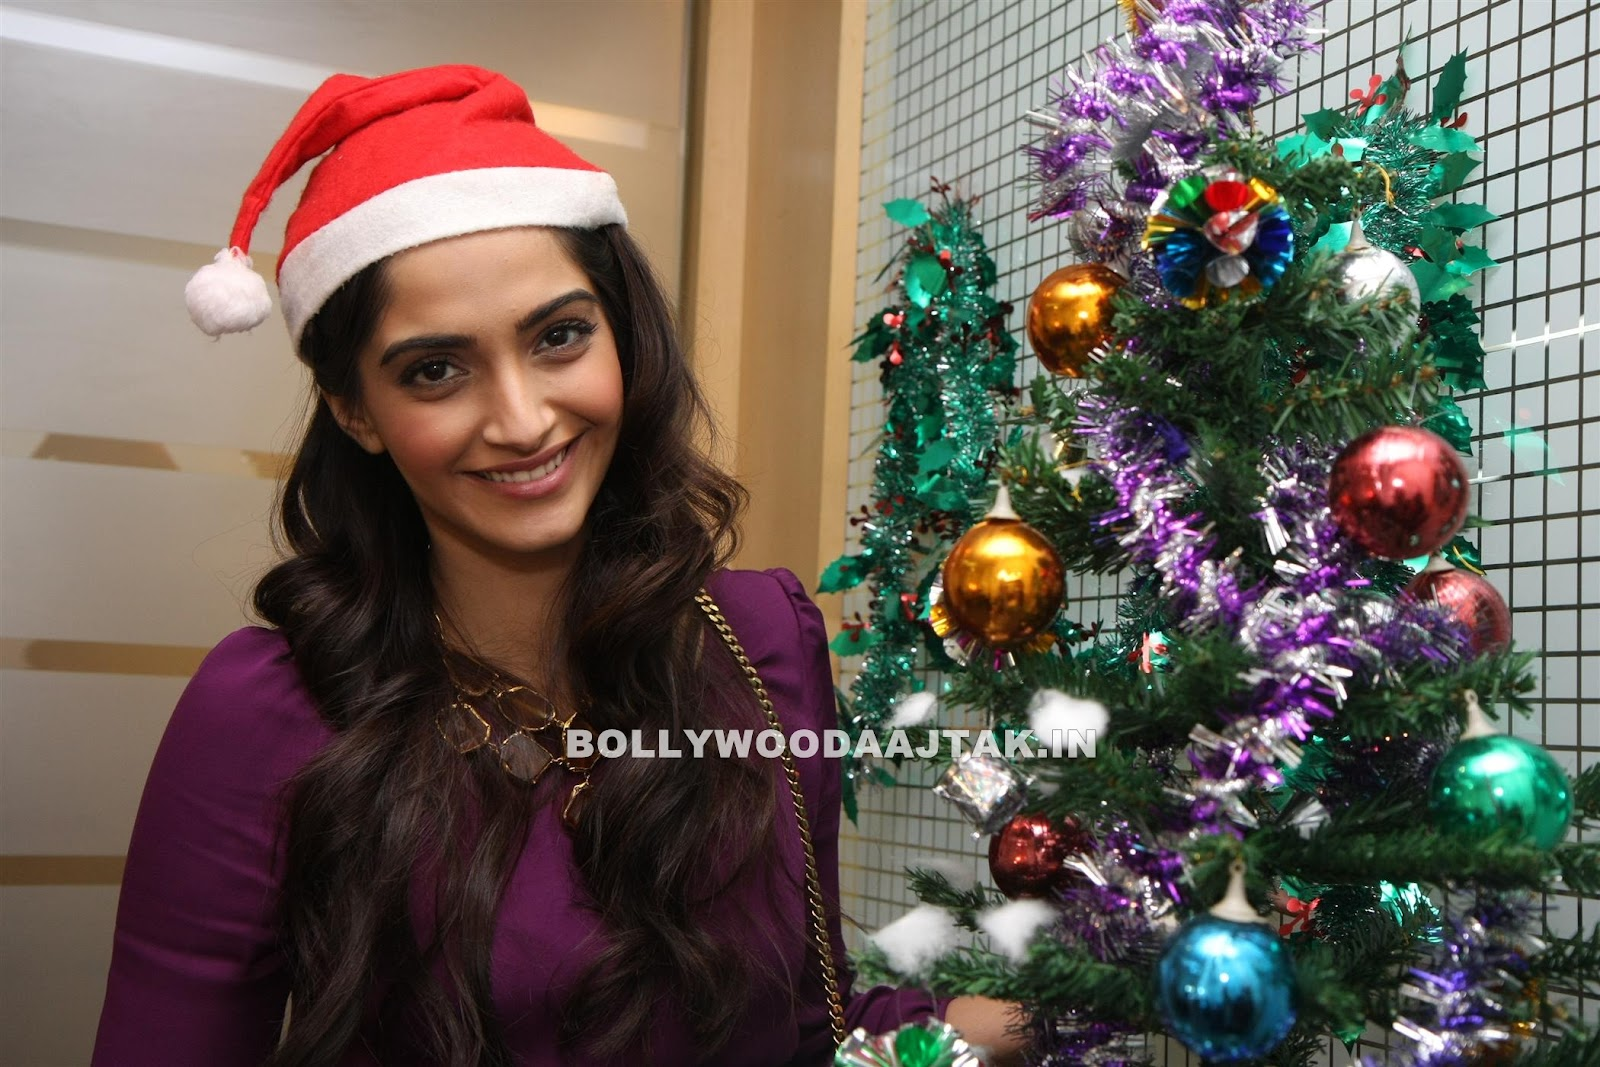 Sonam Kapoor1 - Sonam Kapoor Photoshoot for Christmas Event